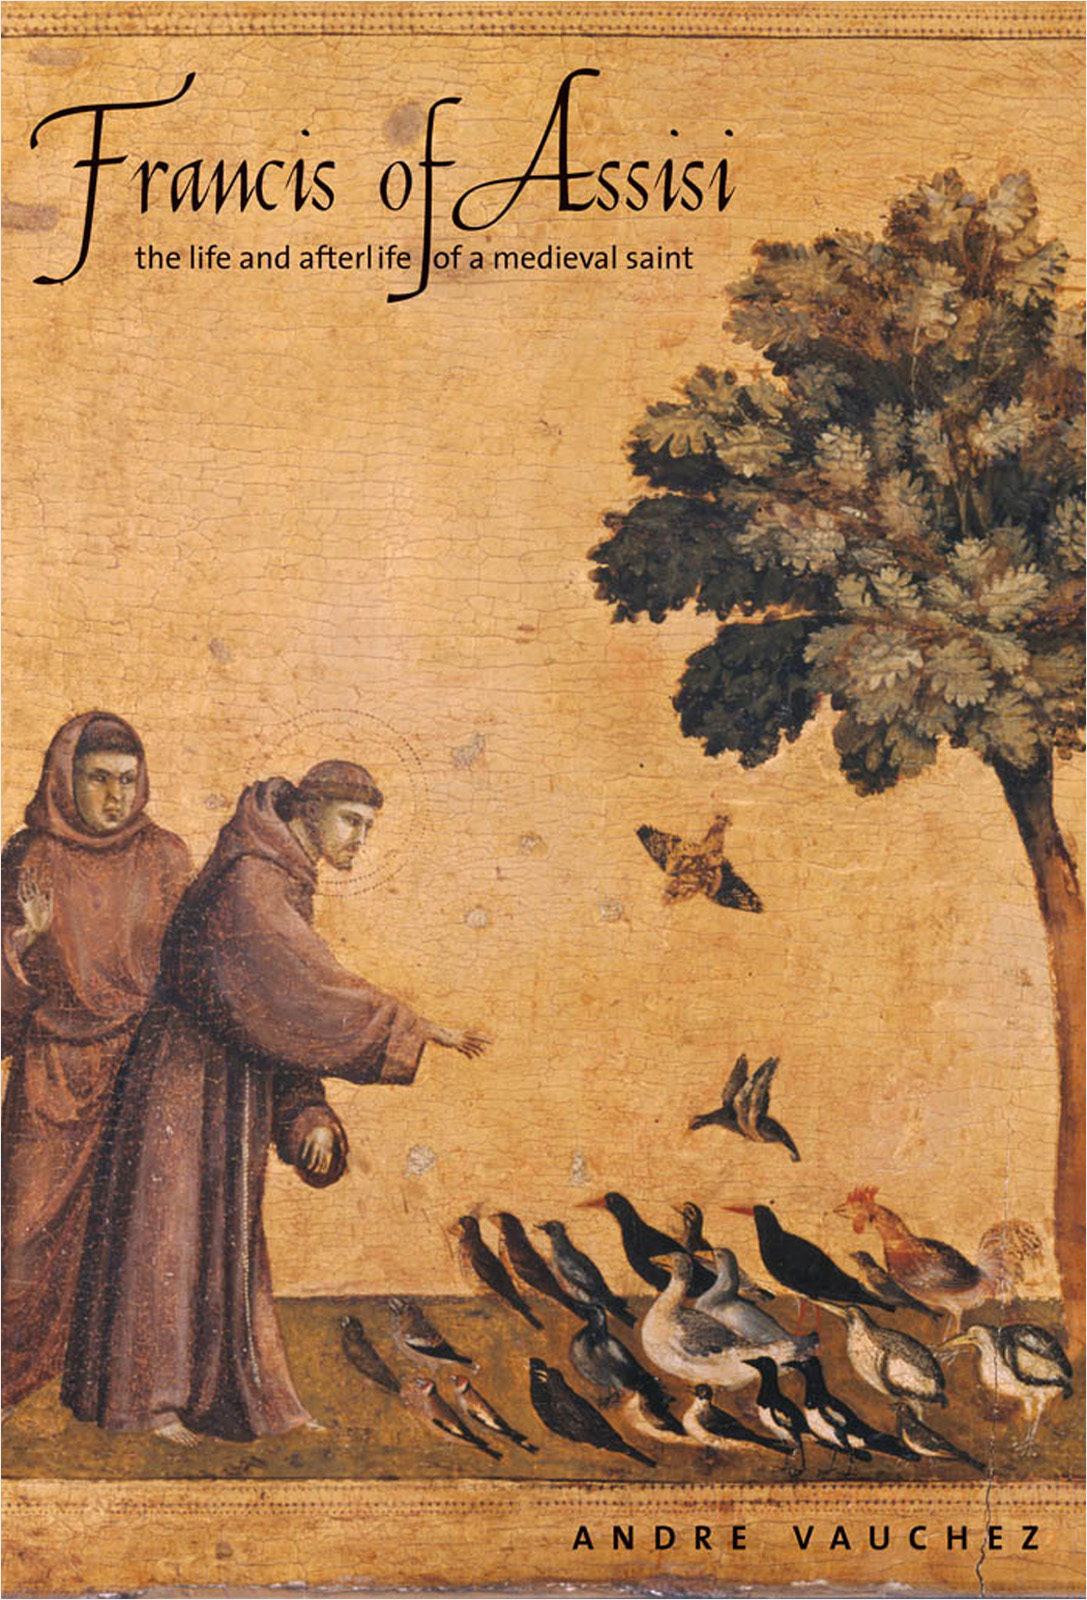 Francis of Assisi: The Life and Afterlife of a Medieval Saint By: Andre Vauchez